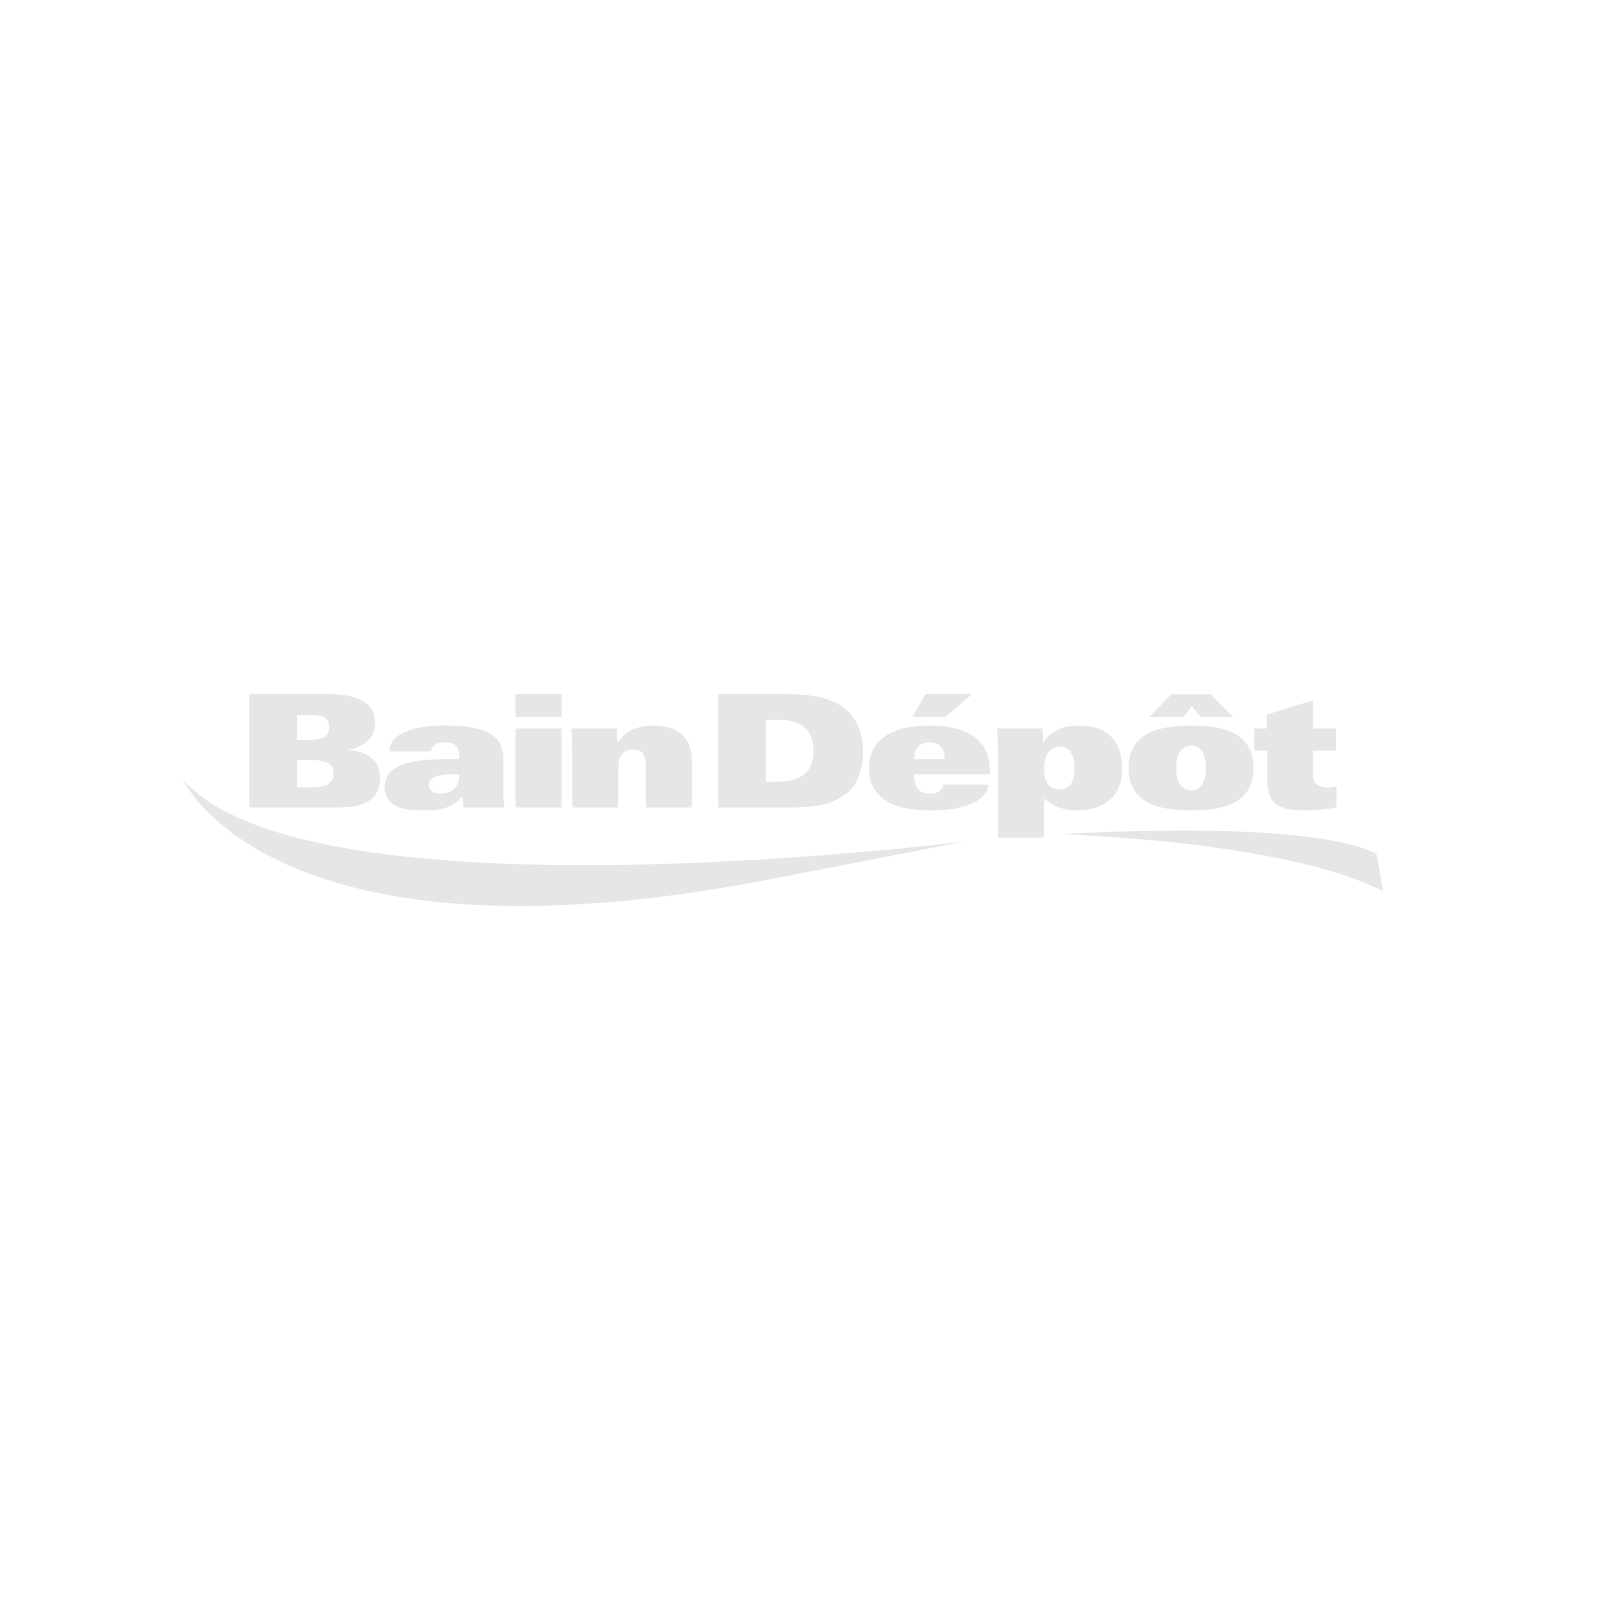 Charcoal wall-mount natural convection heater 1500W - Apero C15HS